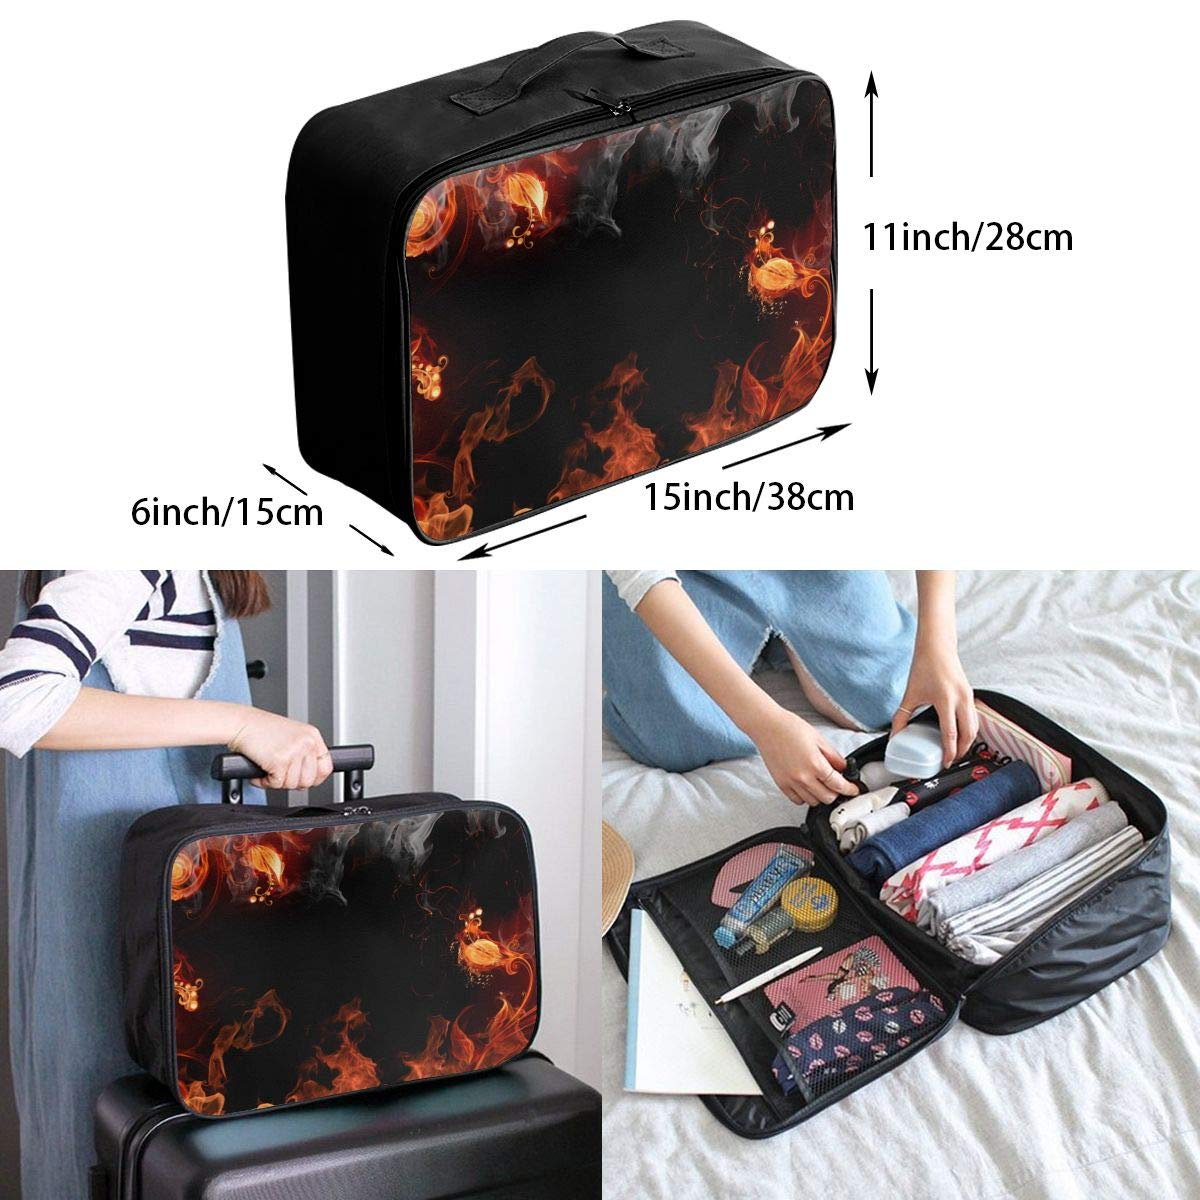 YueLJB Colorful Galaxy Fire Lightweight Large Capacity Portable Luggage Bag Travel Duffel Bag Storage Carry Luggage Duffle Tote Bag